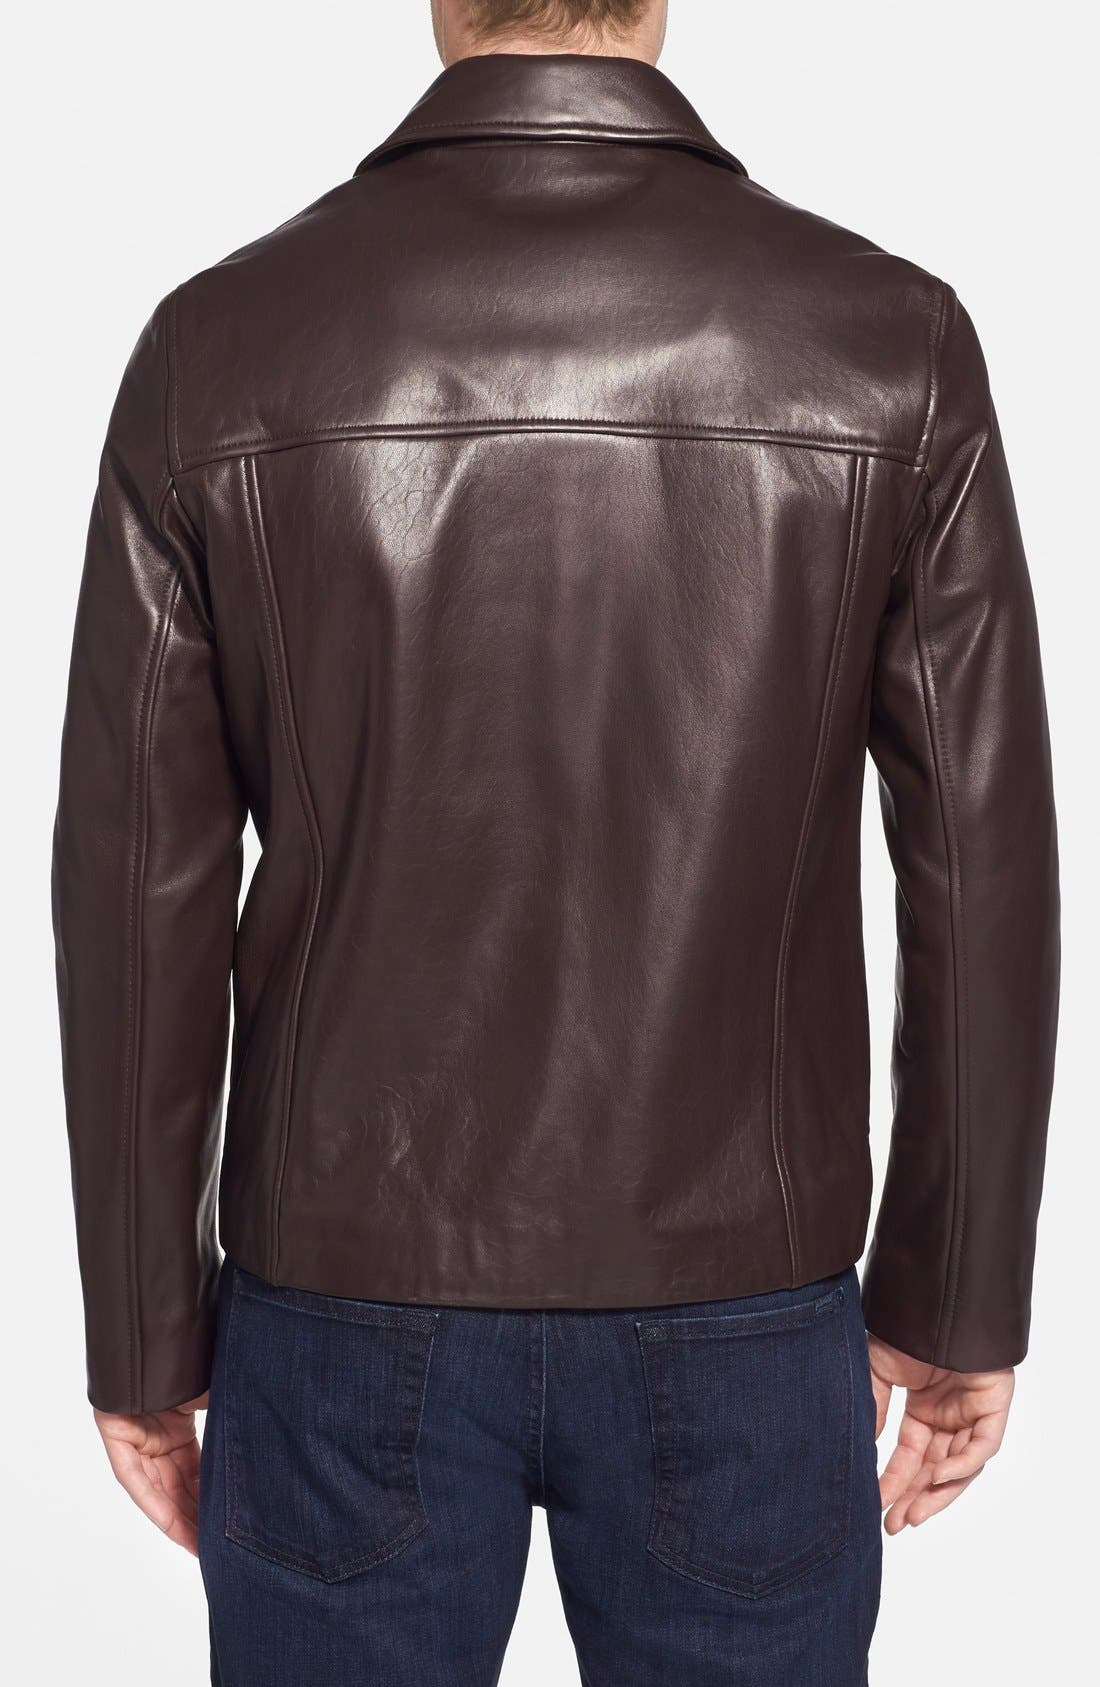 Lambskin Leather Jacket,                             Alternate thumbnail 7, color,                             JAVA